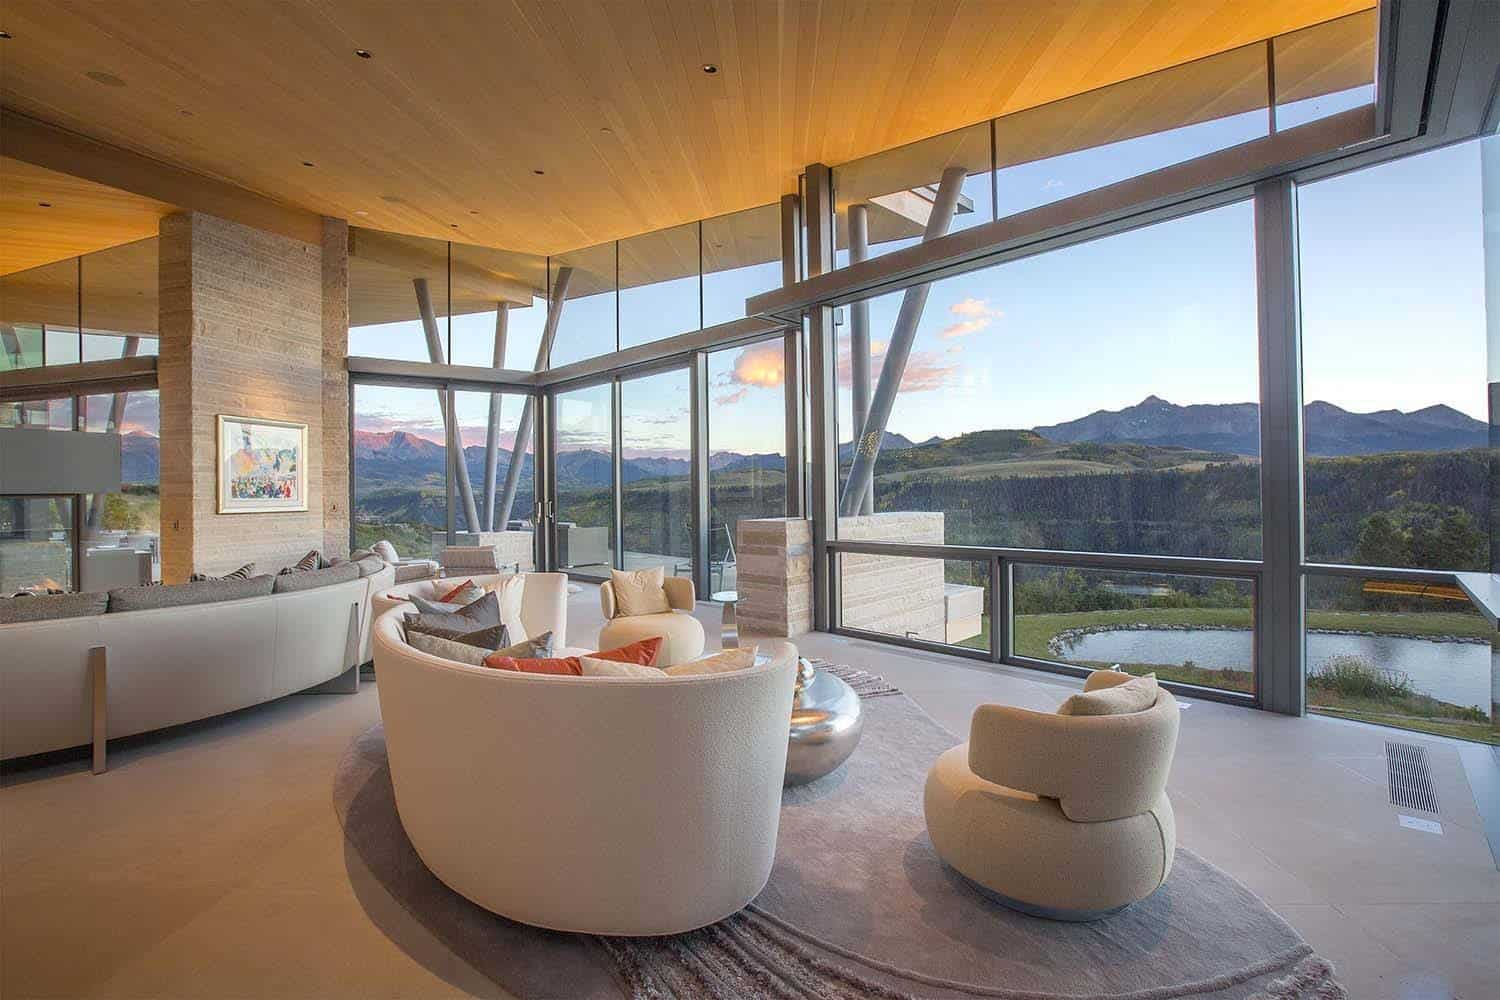 Modern-Residence-Colorado-Poss Architecture-10-1 Kindesign